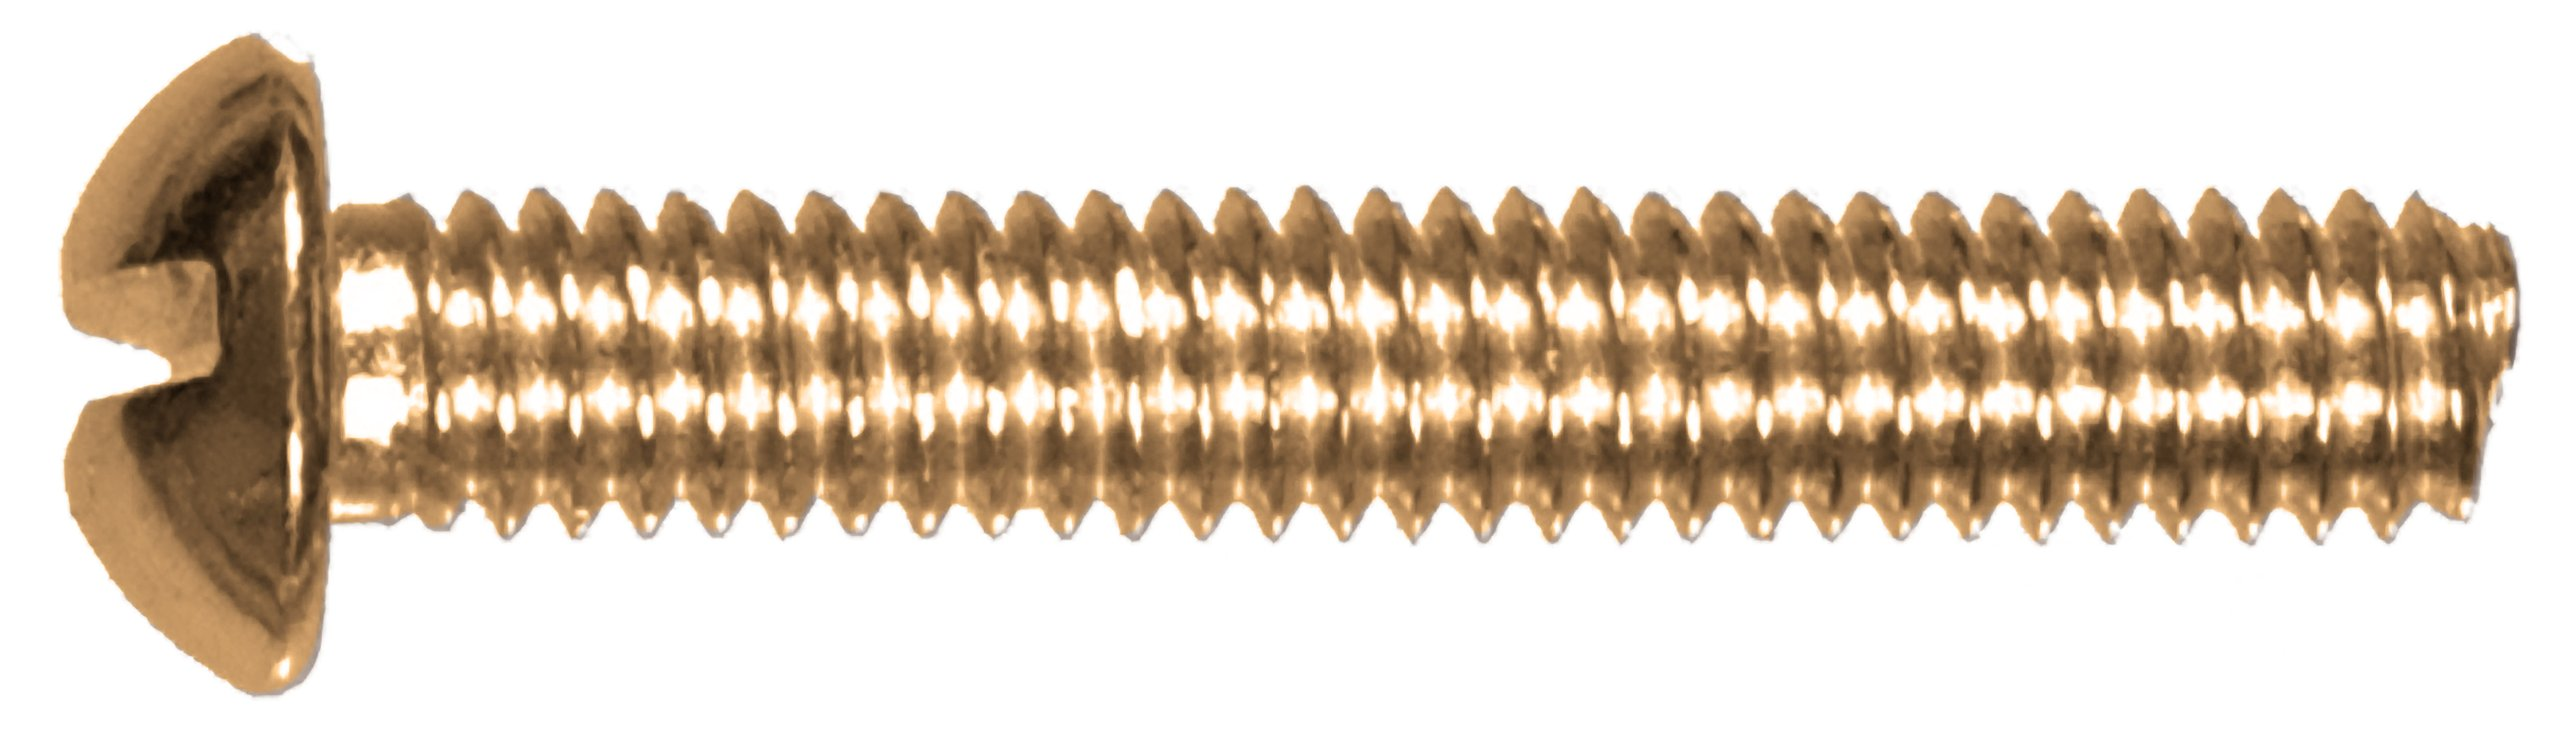 The Hillman Group 45288 10-24 x 3-Inch Round Head Slotted Machine Screw, Brass, 15-Pack by The Hillman Group